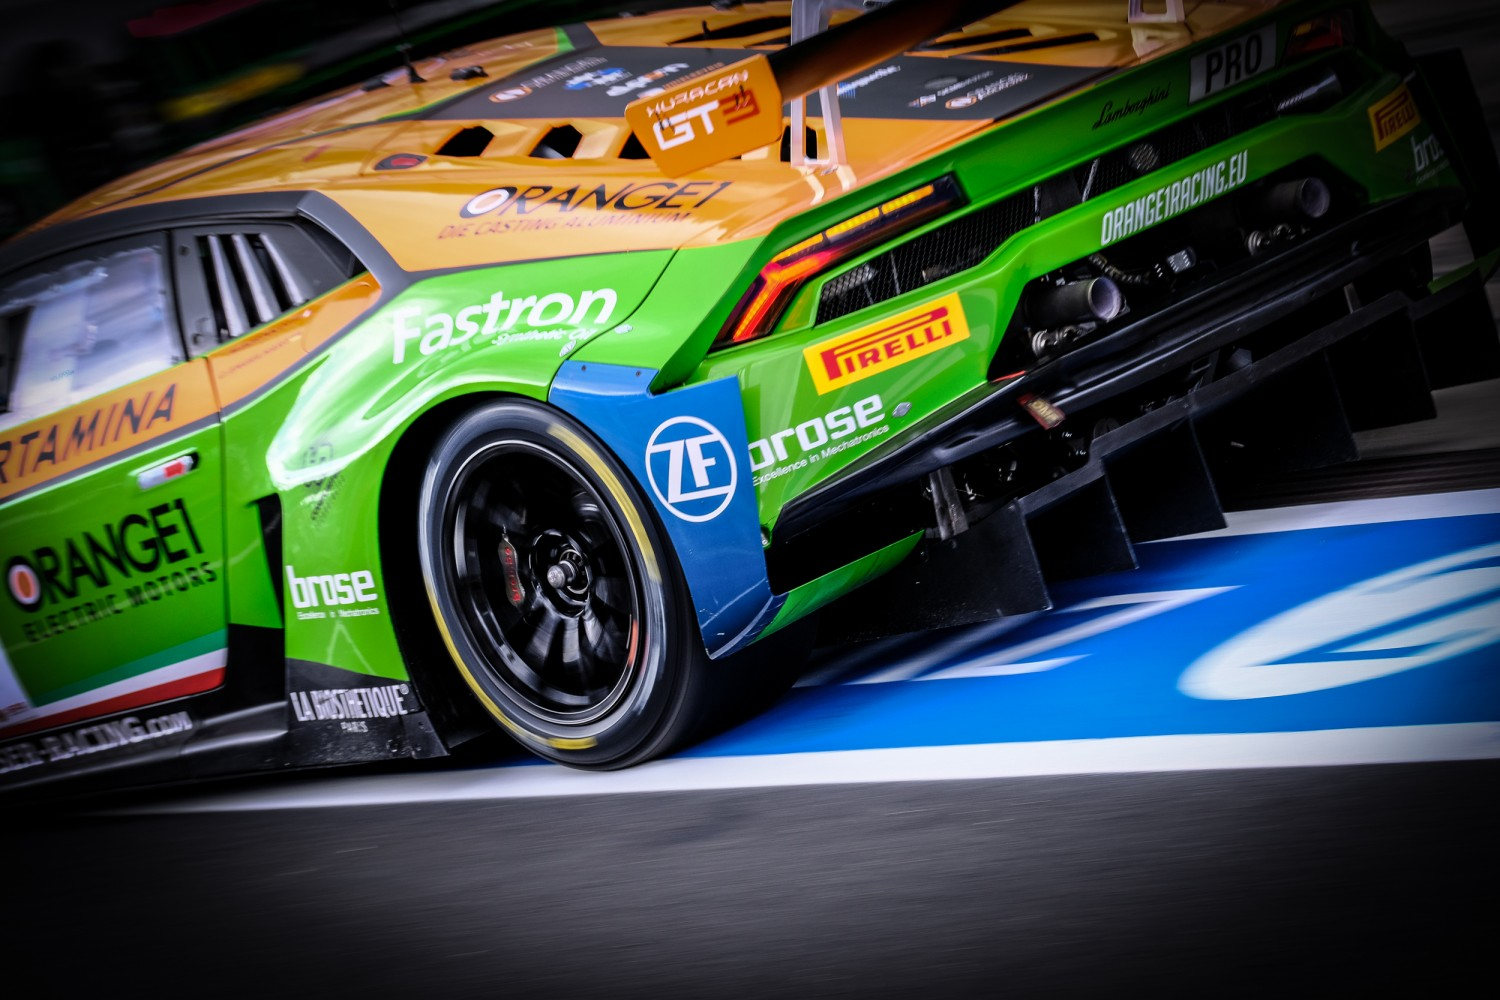 Statement from SRO Motorsports Group regarding disqualification of car #63 from Nürburgring event